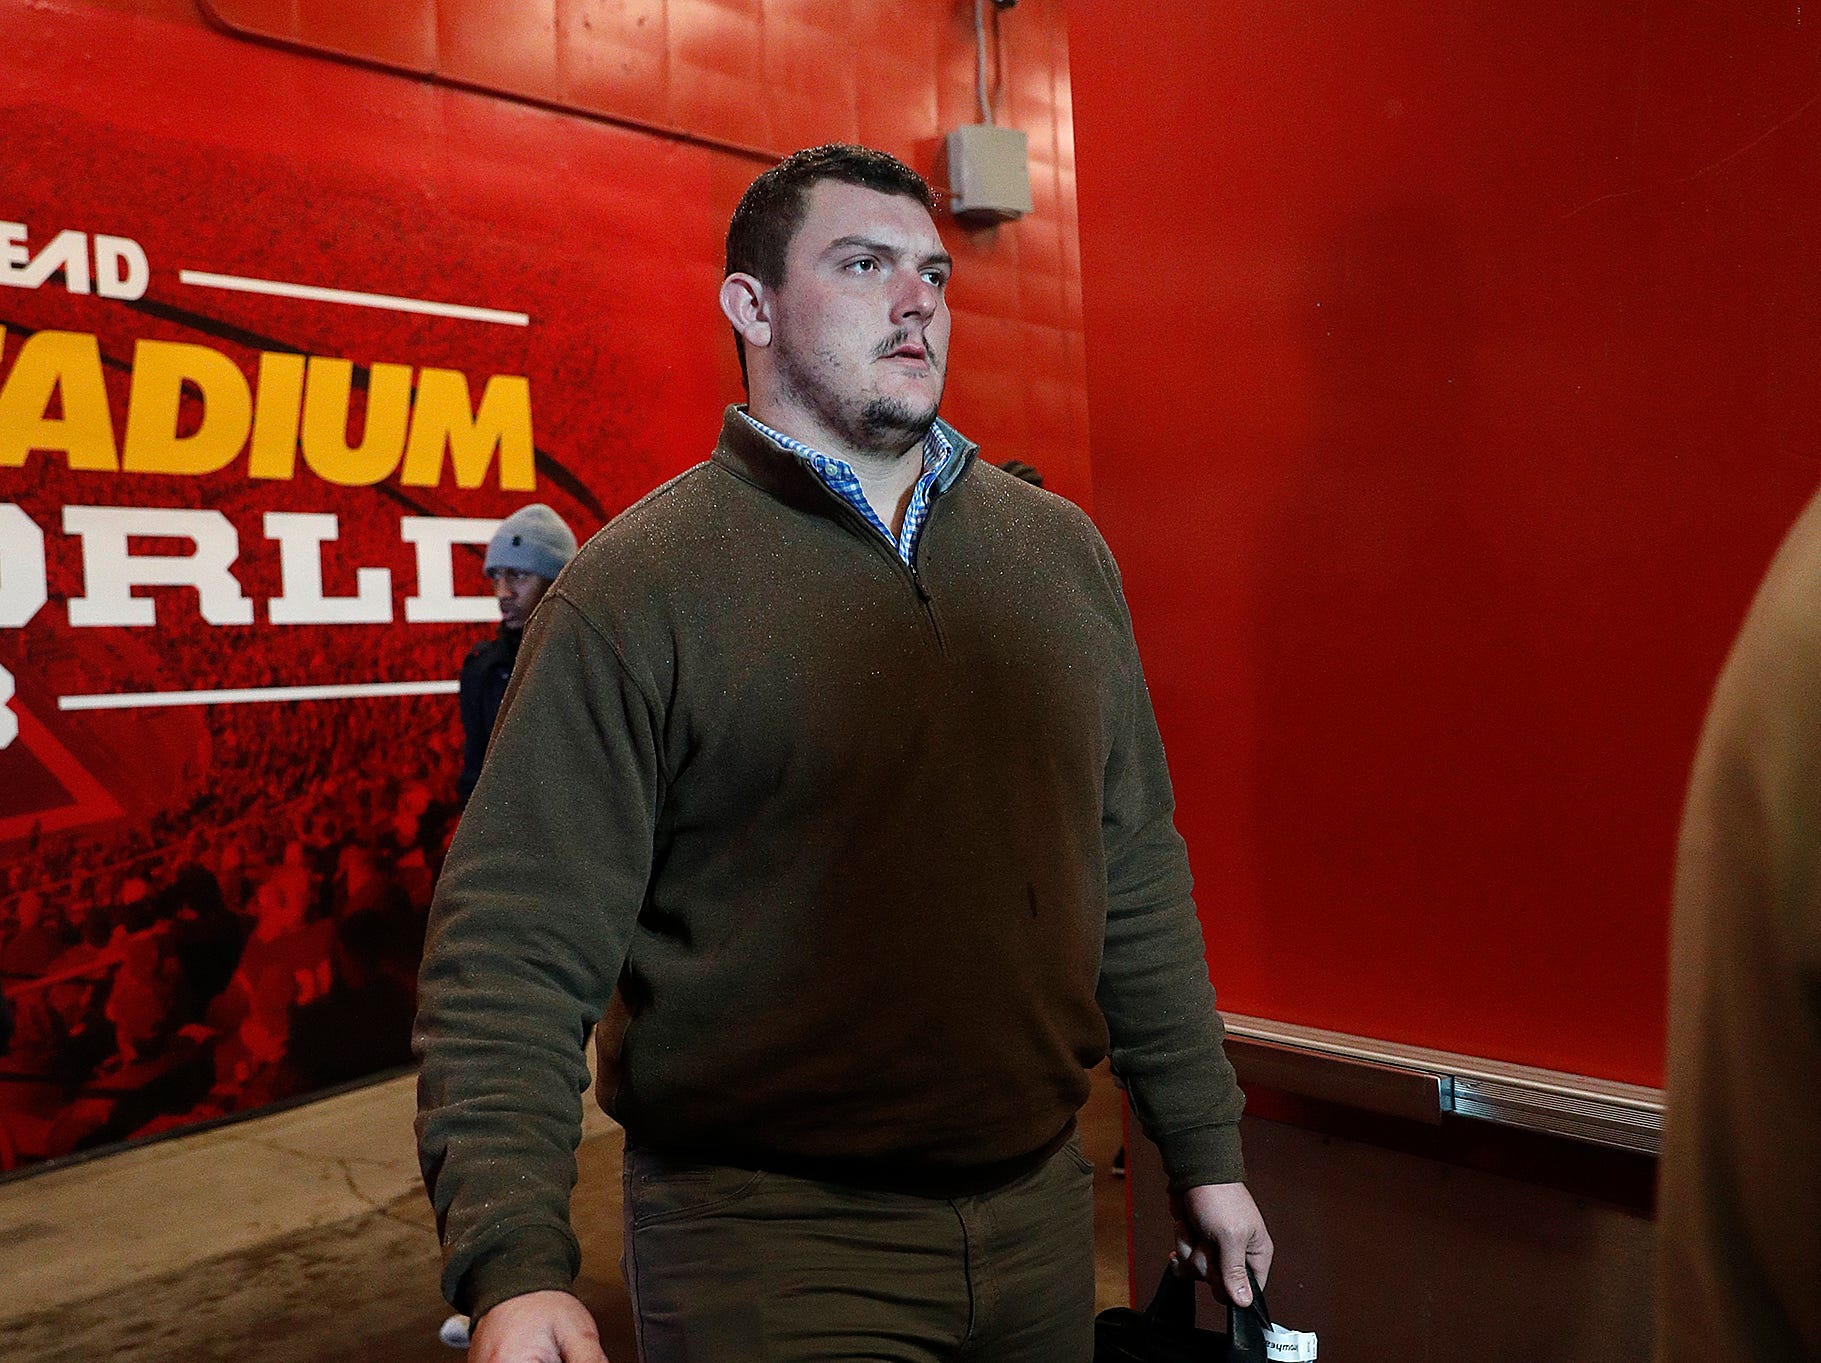 Indianapolis Colts center Ryan Kelly (78) and the Indianapolis Colts arrive for their game against the Kansas City Chiefs at Arrowhead Stadium in Kansas City, MO., on Saturday, Jan. 12, 2019.